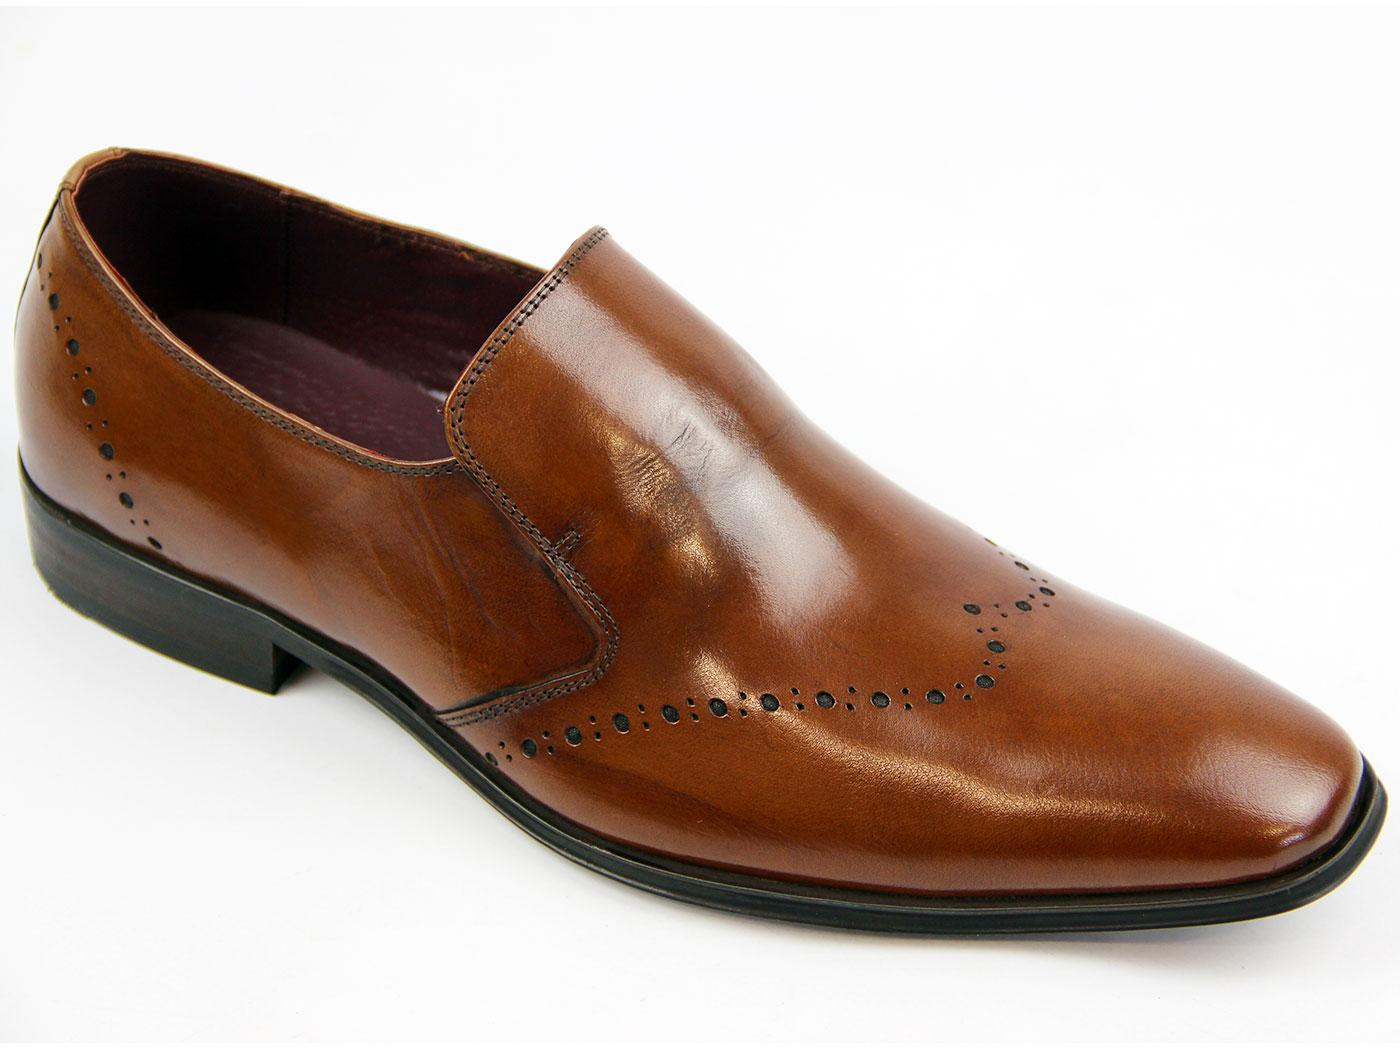 Men's Brogue Shoes & Boots Our collection of timeless men's brogues has it all – from leather brogue boots to classy Chelsea boots in black, brown and tan. Dress them up with a sharp suit, or pair them with jeans and something low-key for the weekend.